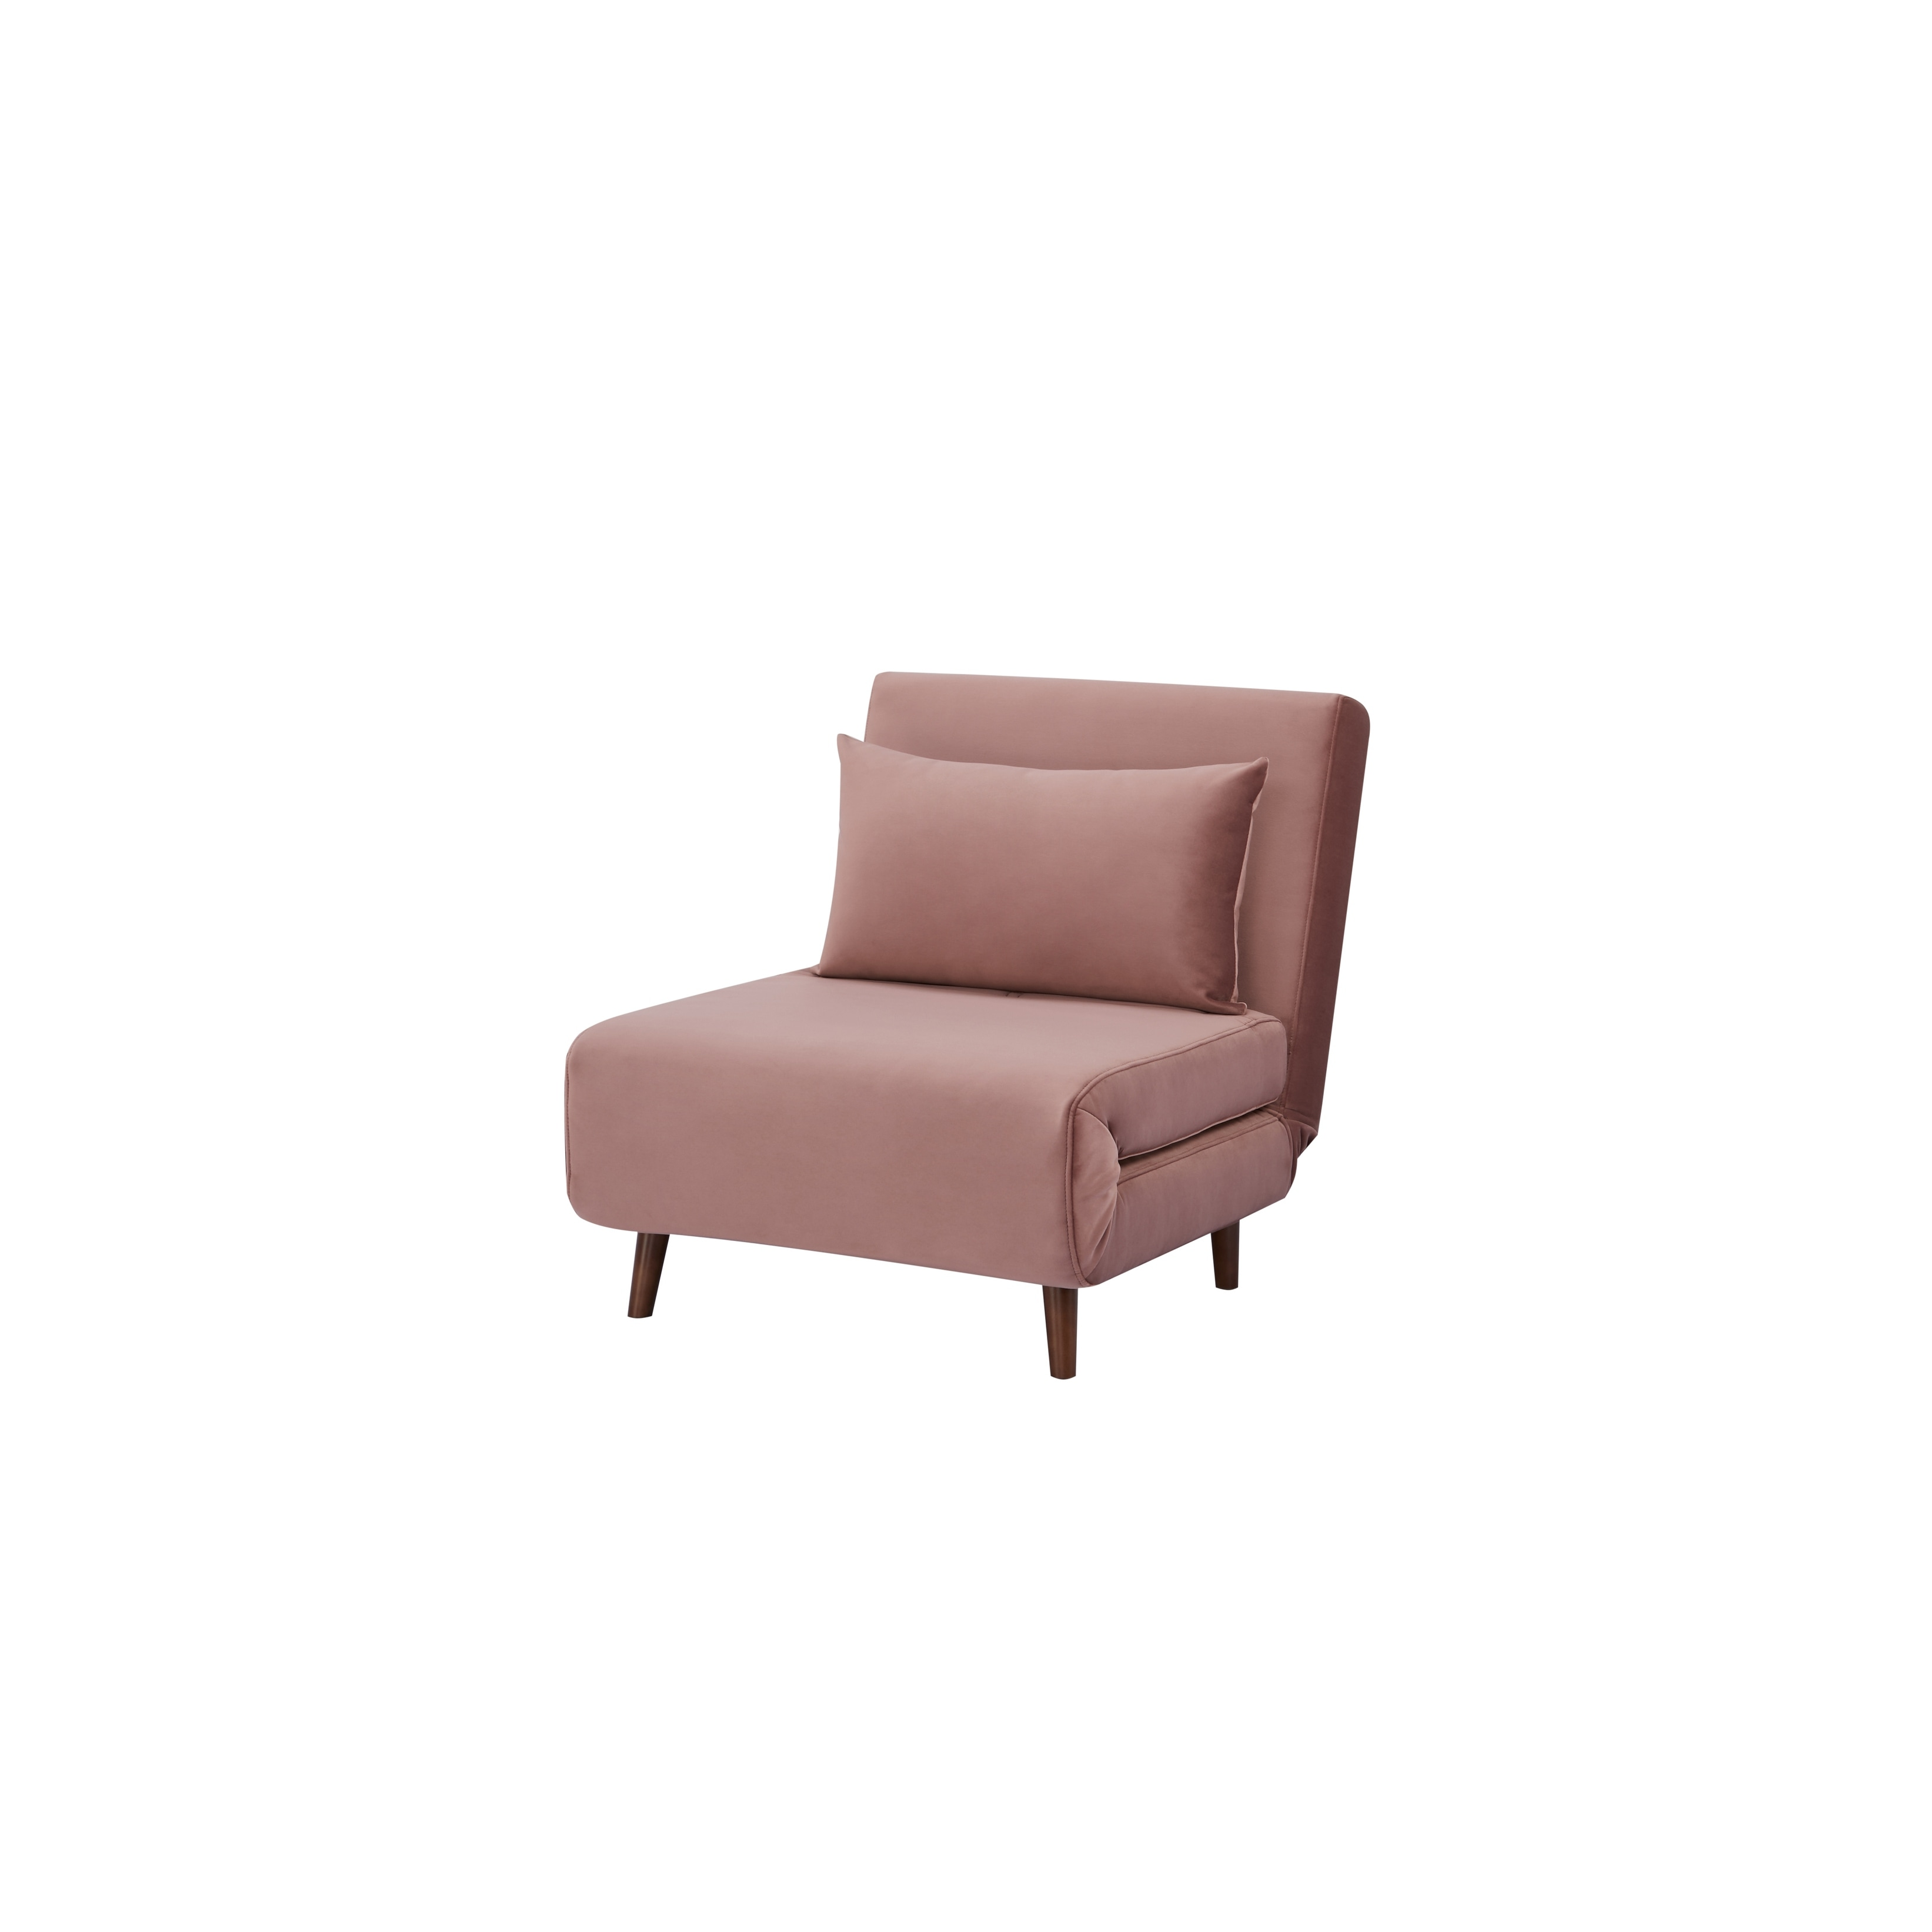 Tustin Upholstered Convertible Lounge Sleeper Chair On Sale Overstock 27618119